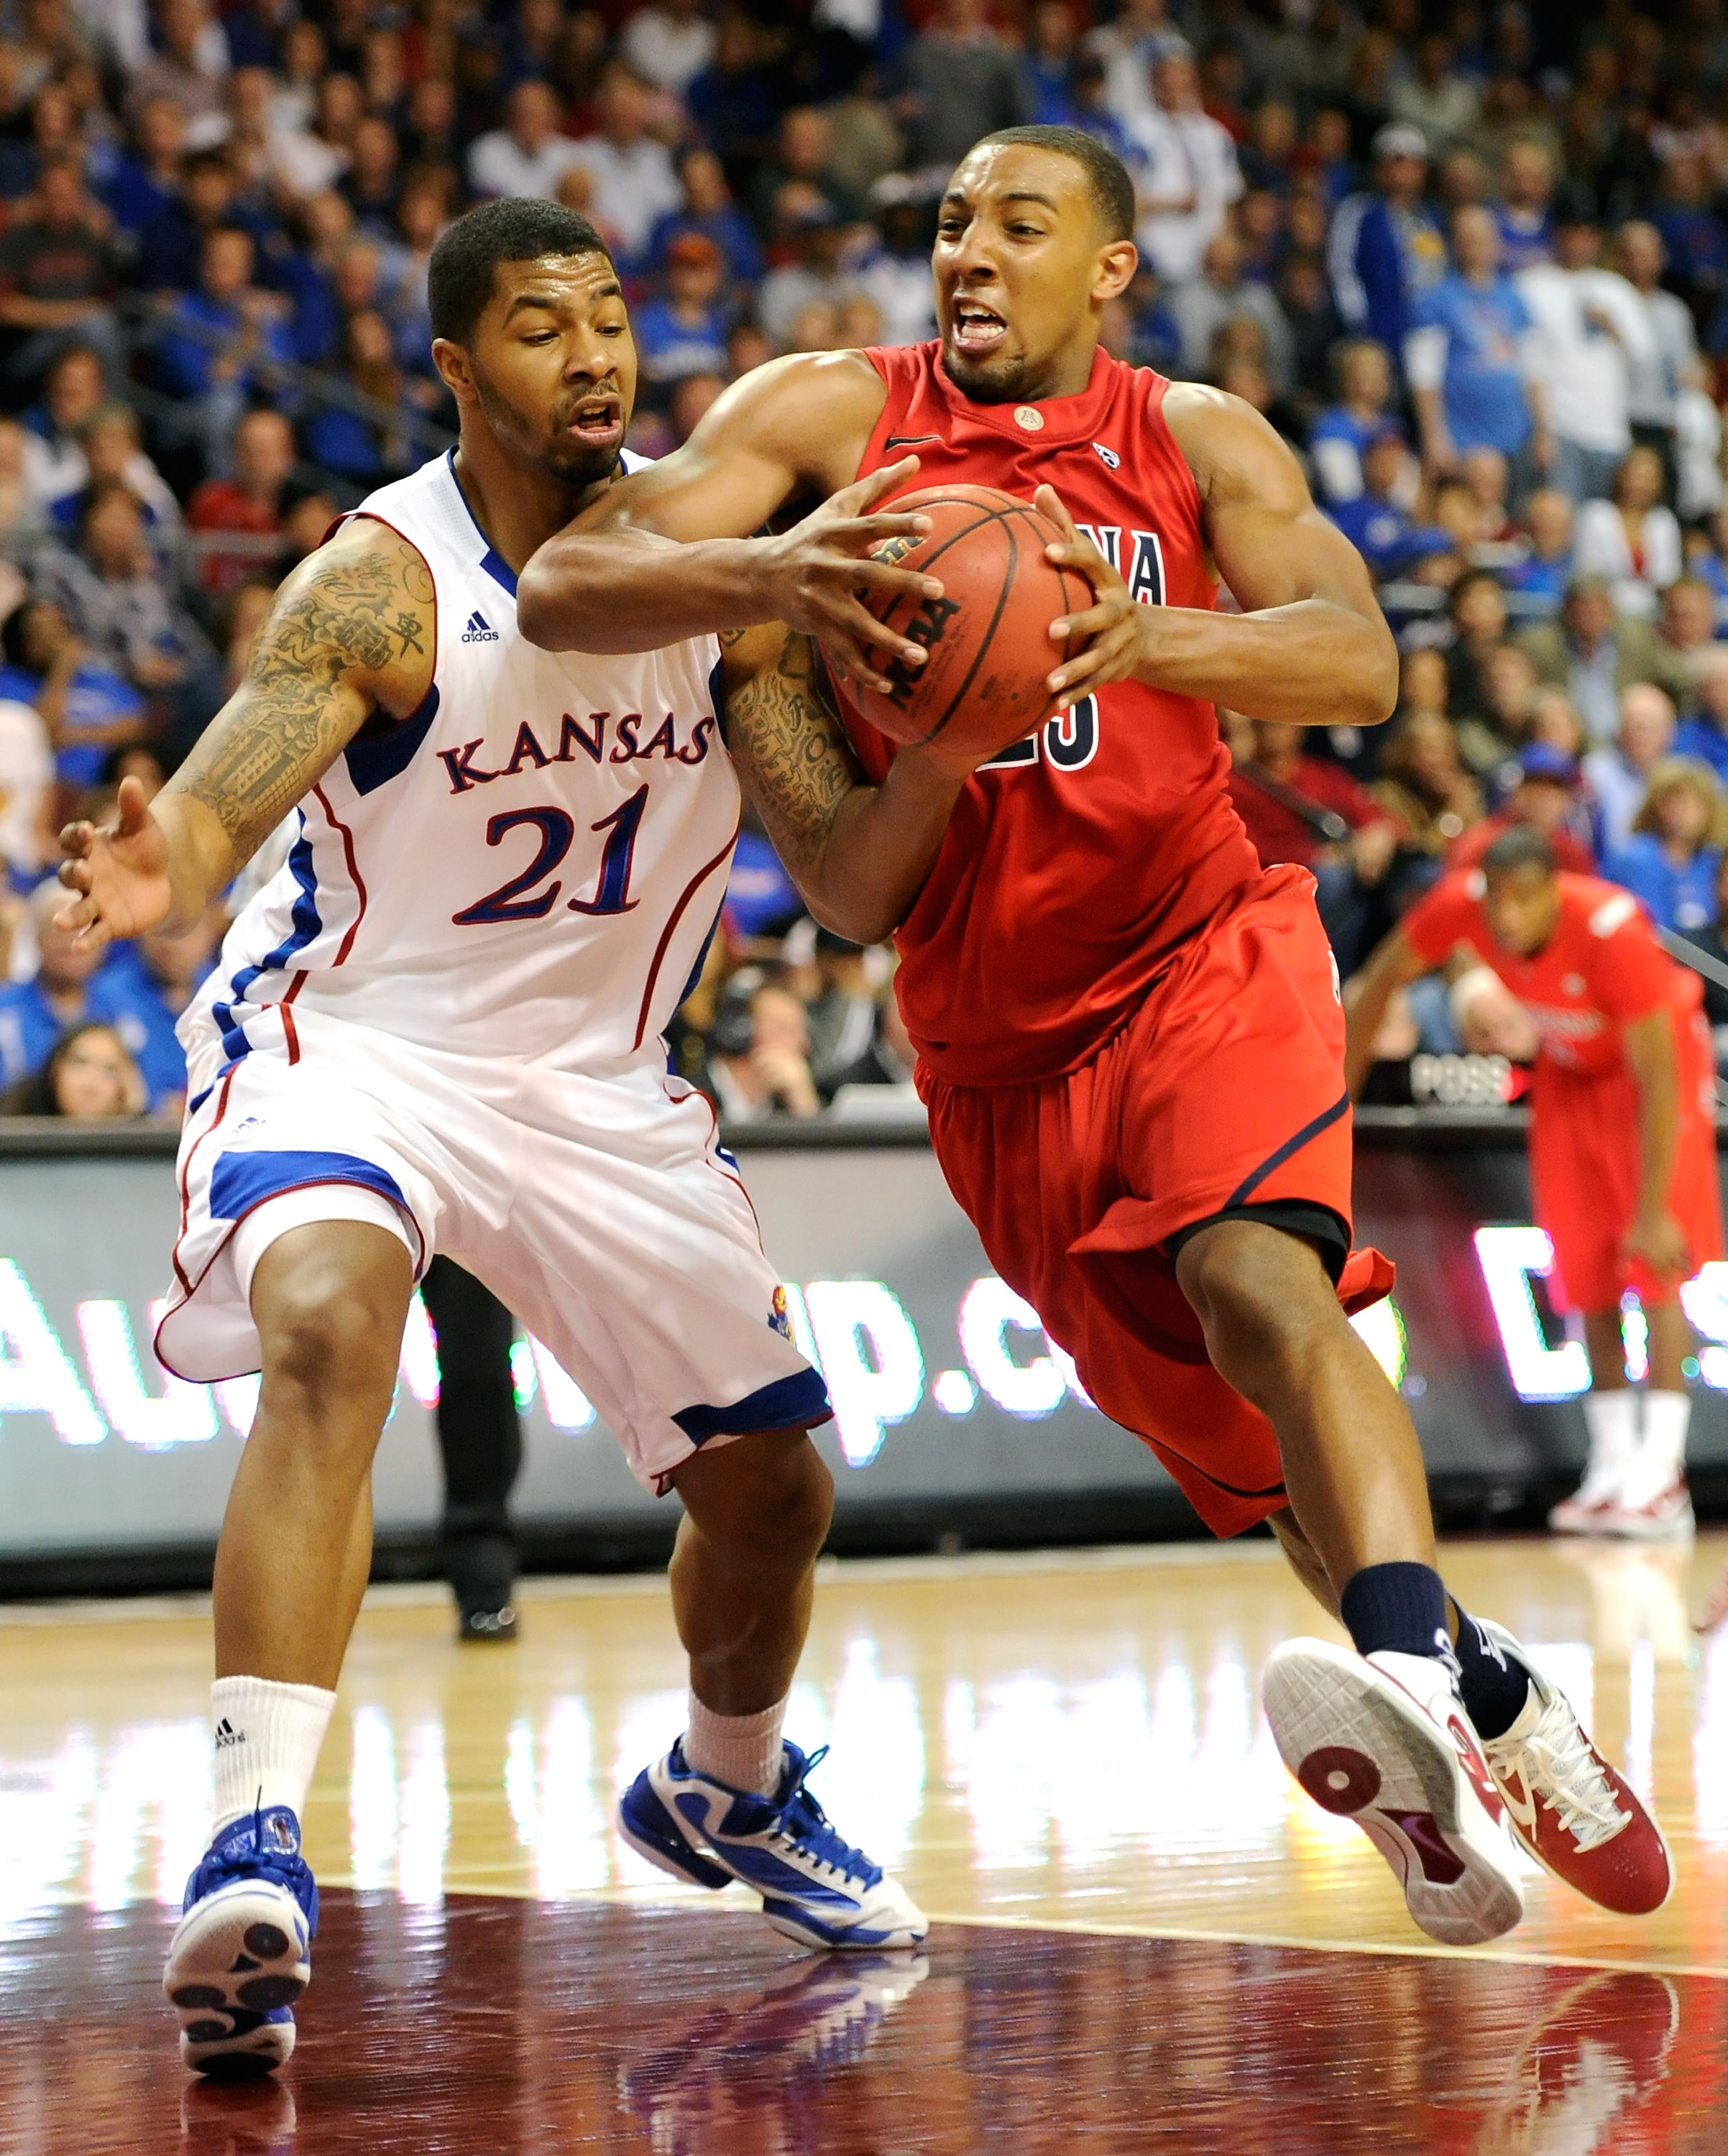 LAS VEGAS - NOVEMBER 27:  Markieff Morris #21 of the Kansas Jayhawks fouls Derrick Williams #23 of the Arizona Wildcats during the championship game of the Las Vegas Invitational at The Orleans Arena November 27, 2010 in Las Vegas, Nevada. Kansas won 87-7